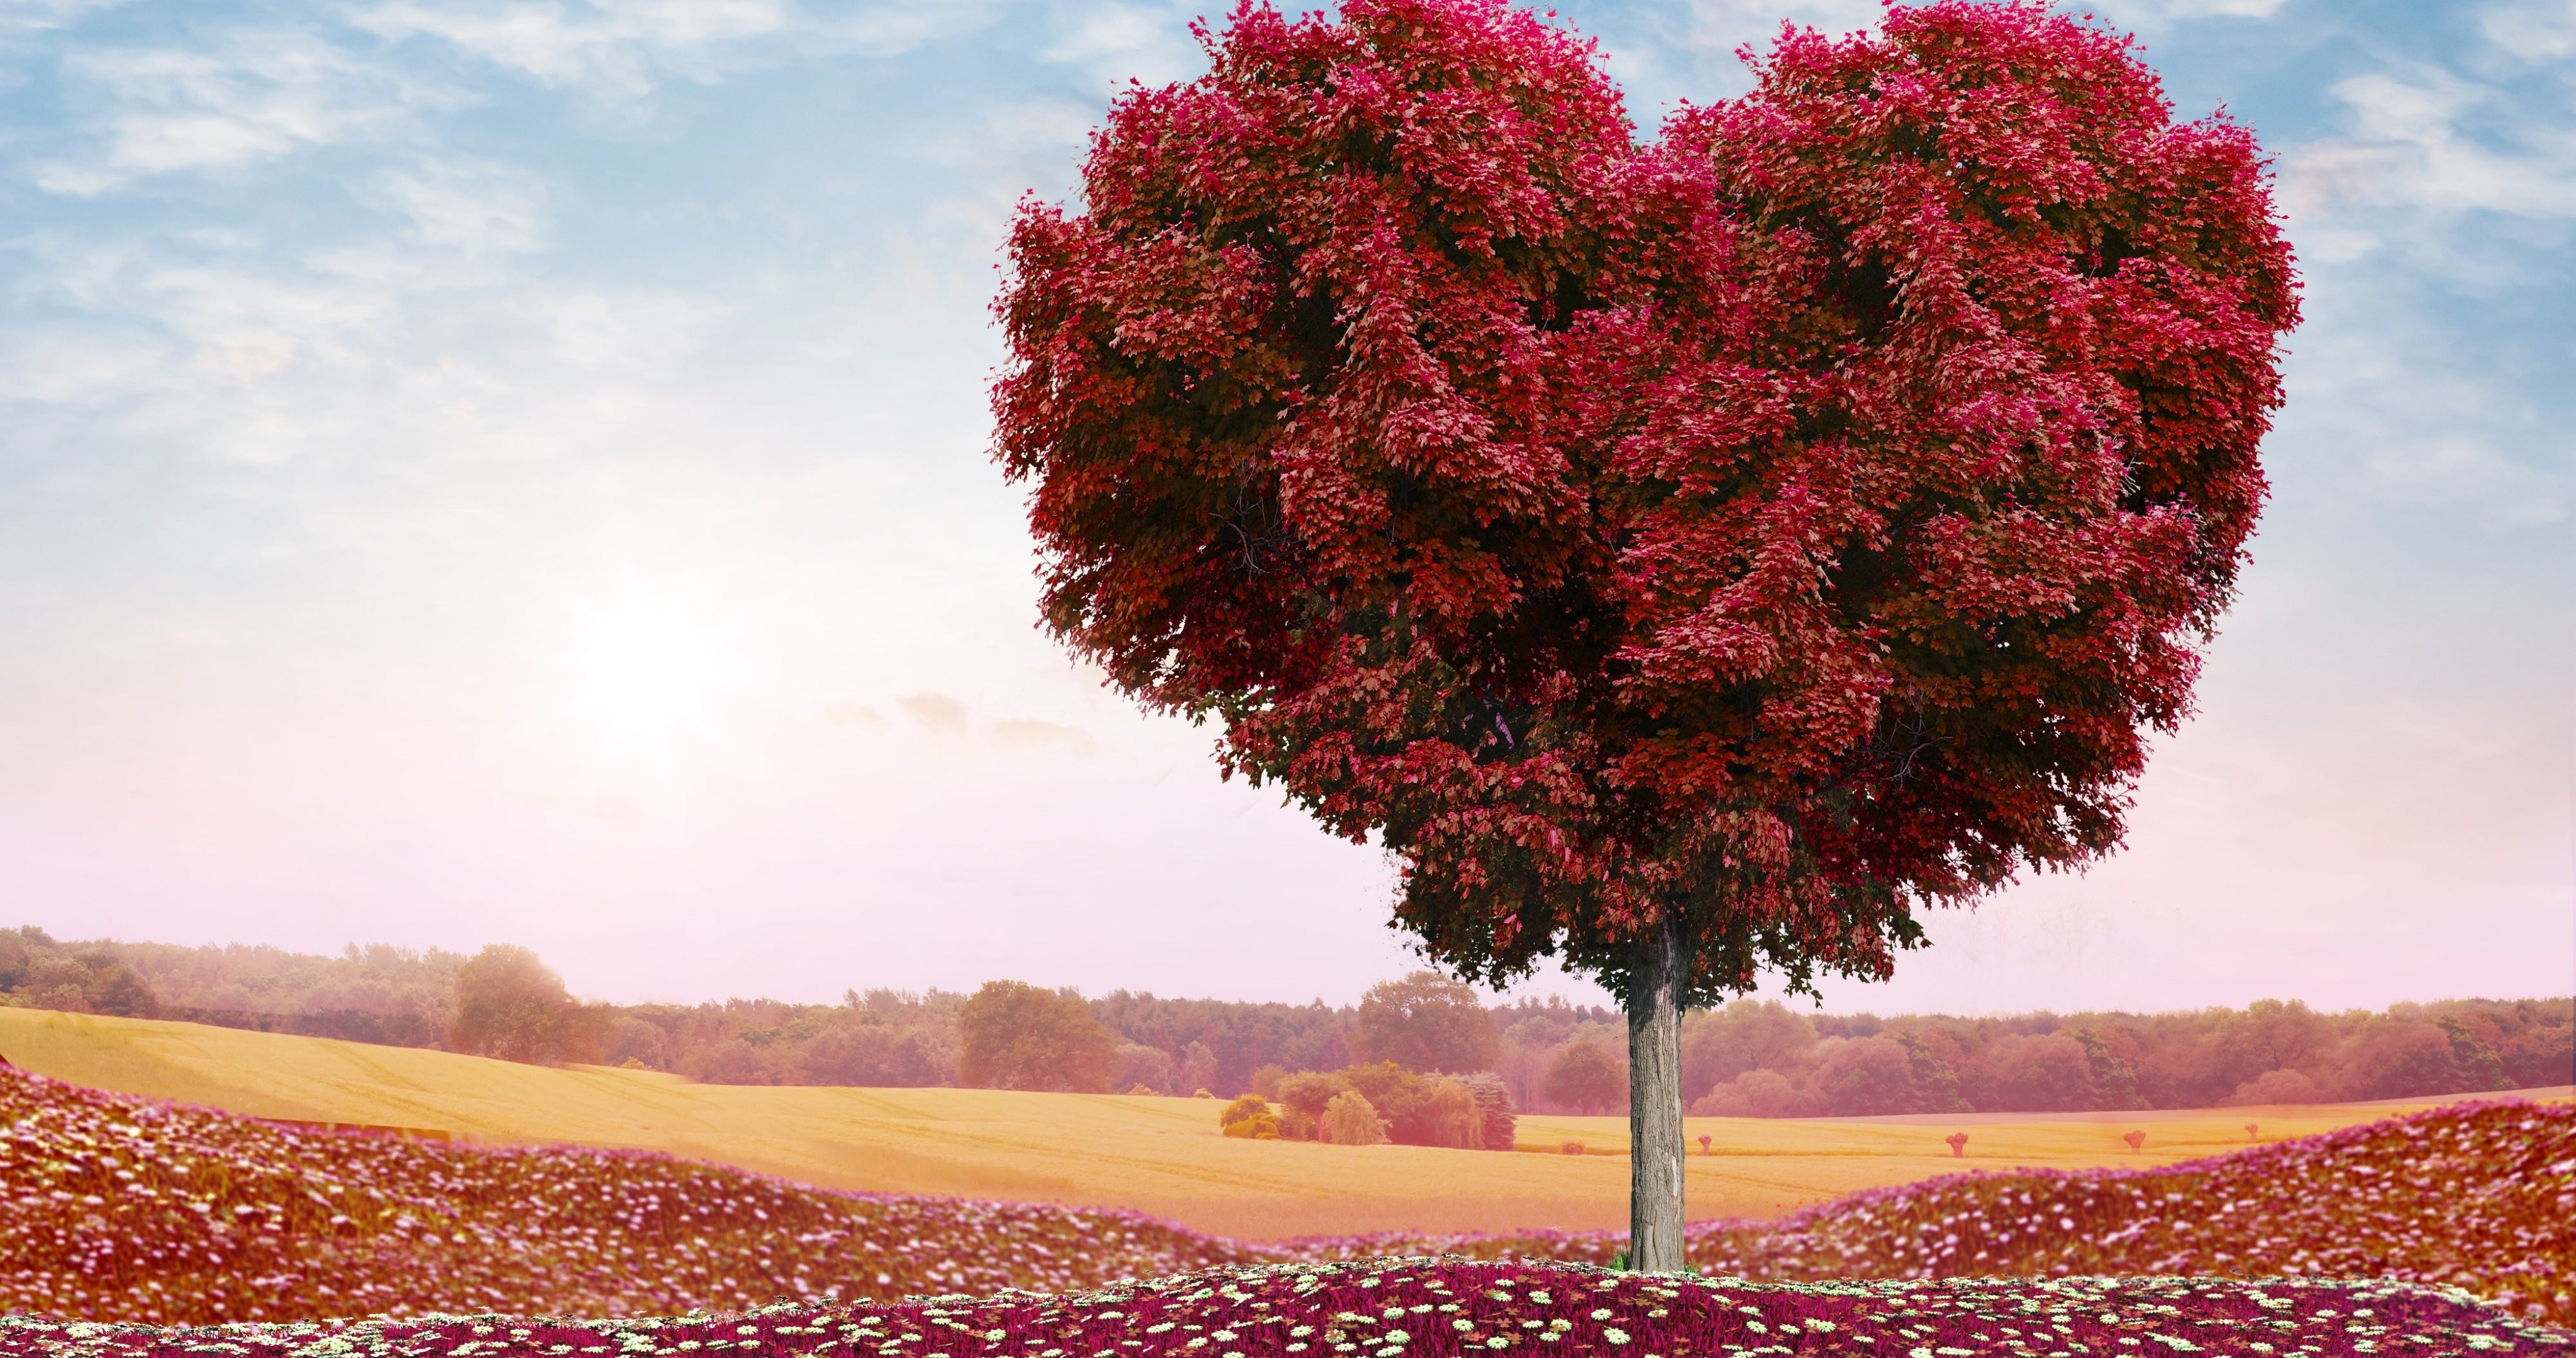 Valentines Day Hearts 4k Ultra Hd Wallpaper High Quality Walls